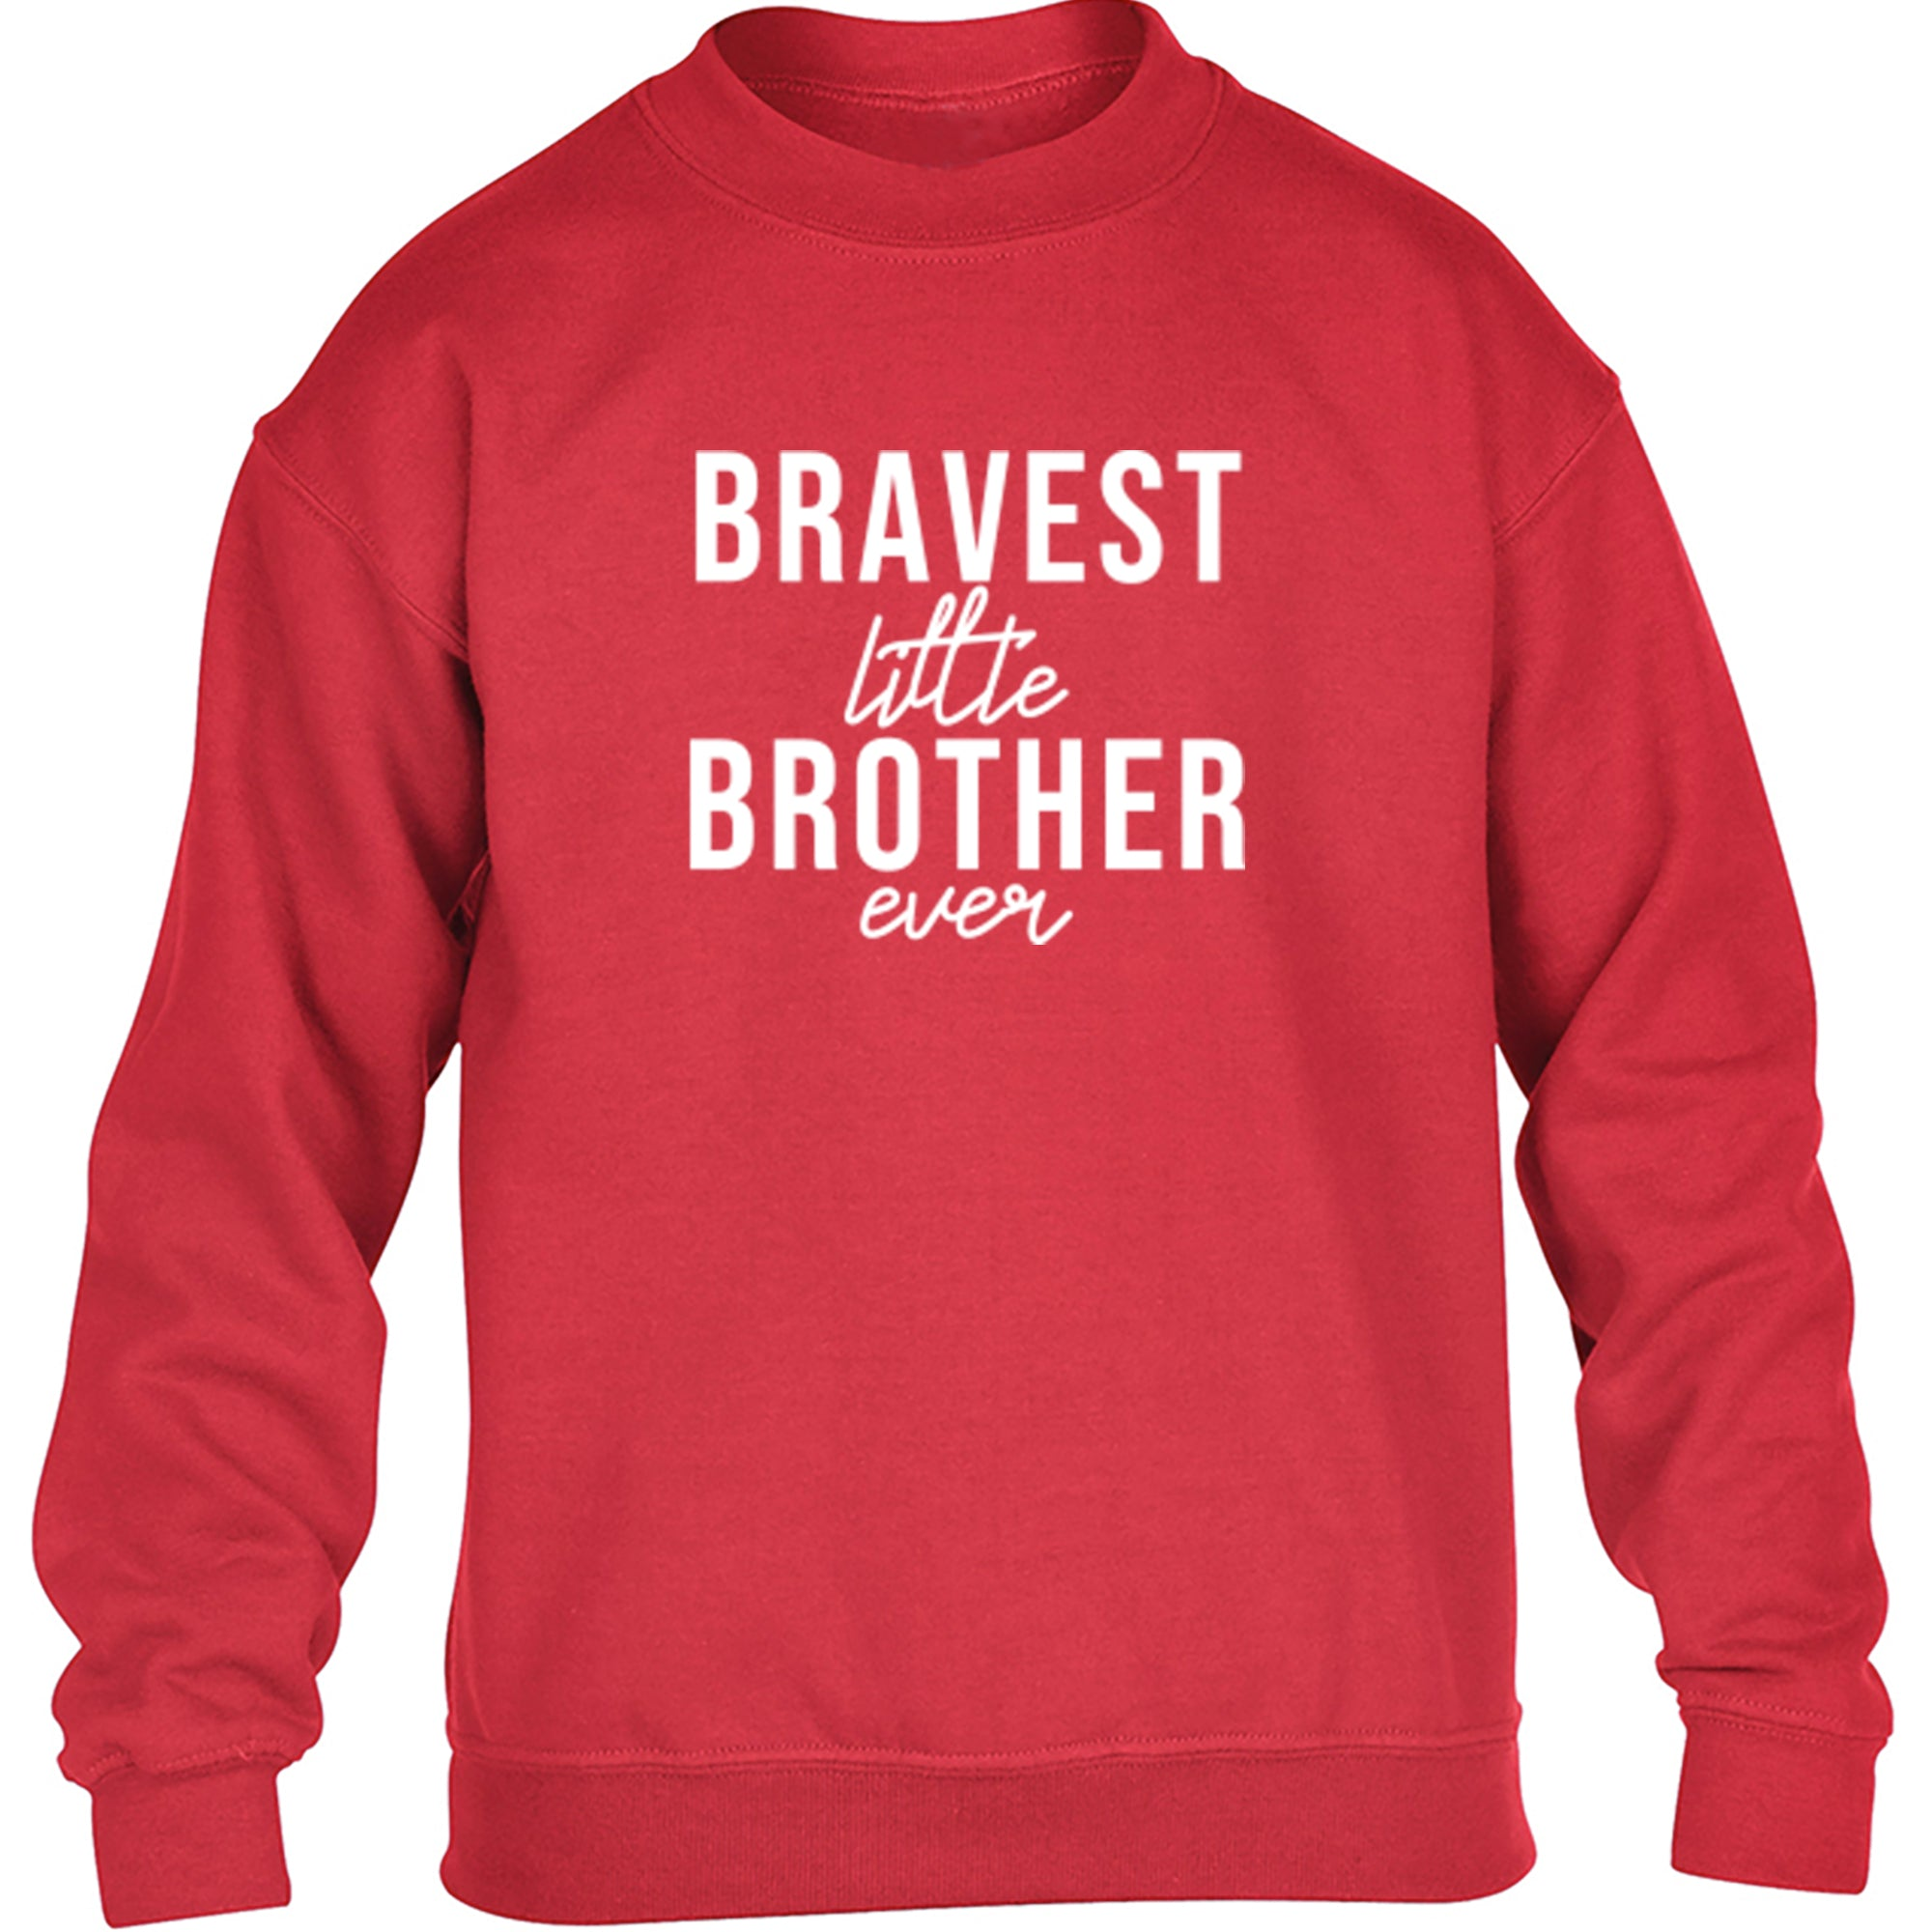 Bravest Little Brother Ever Childrens Ages 3/4-12/14 Unisex Jumper S0520 - Illustrated Identity Ltd.